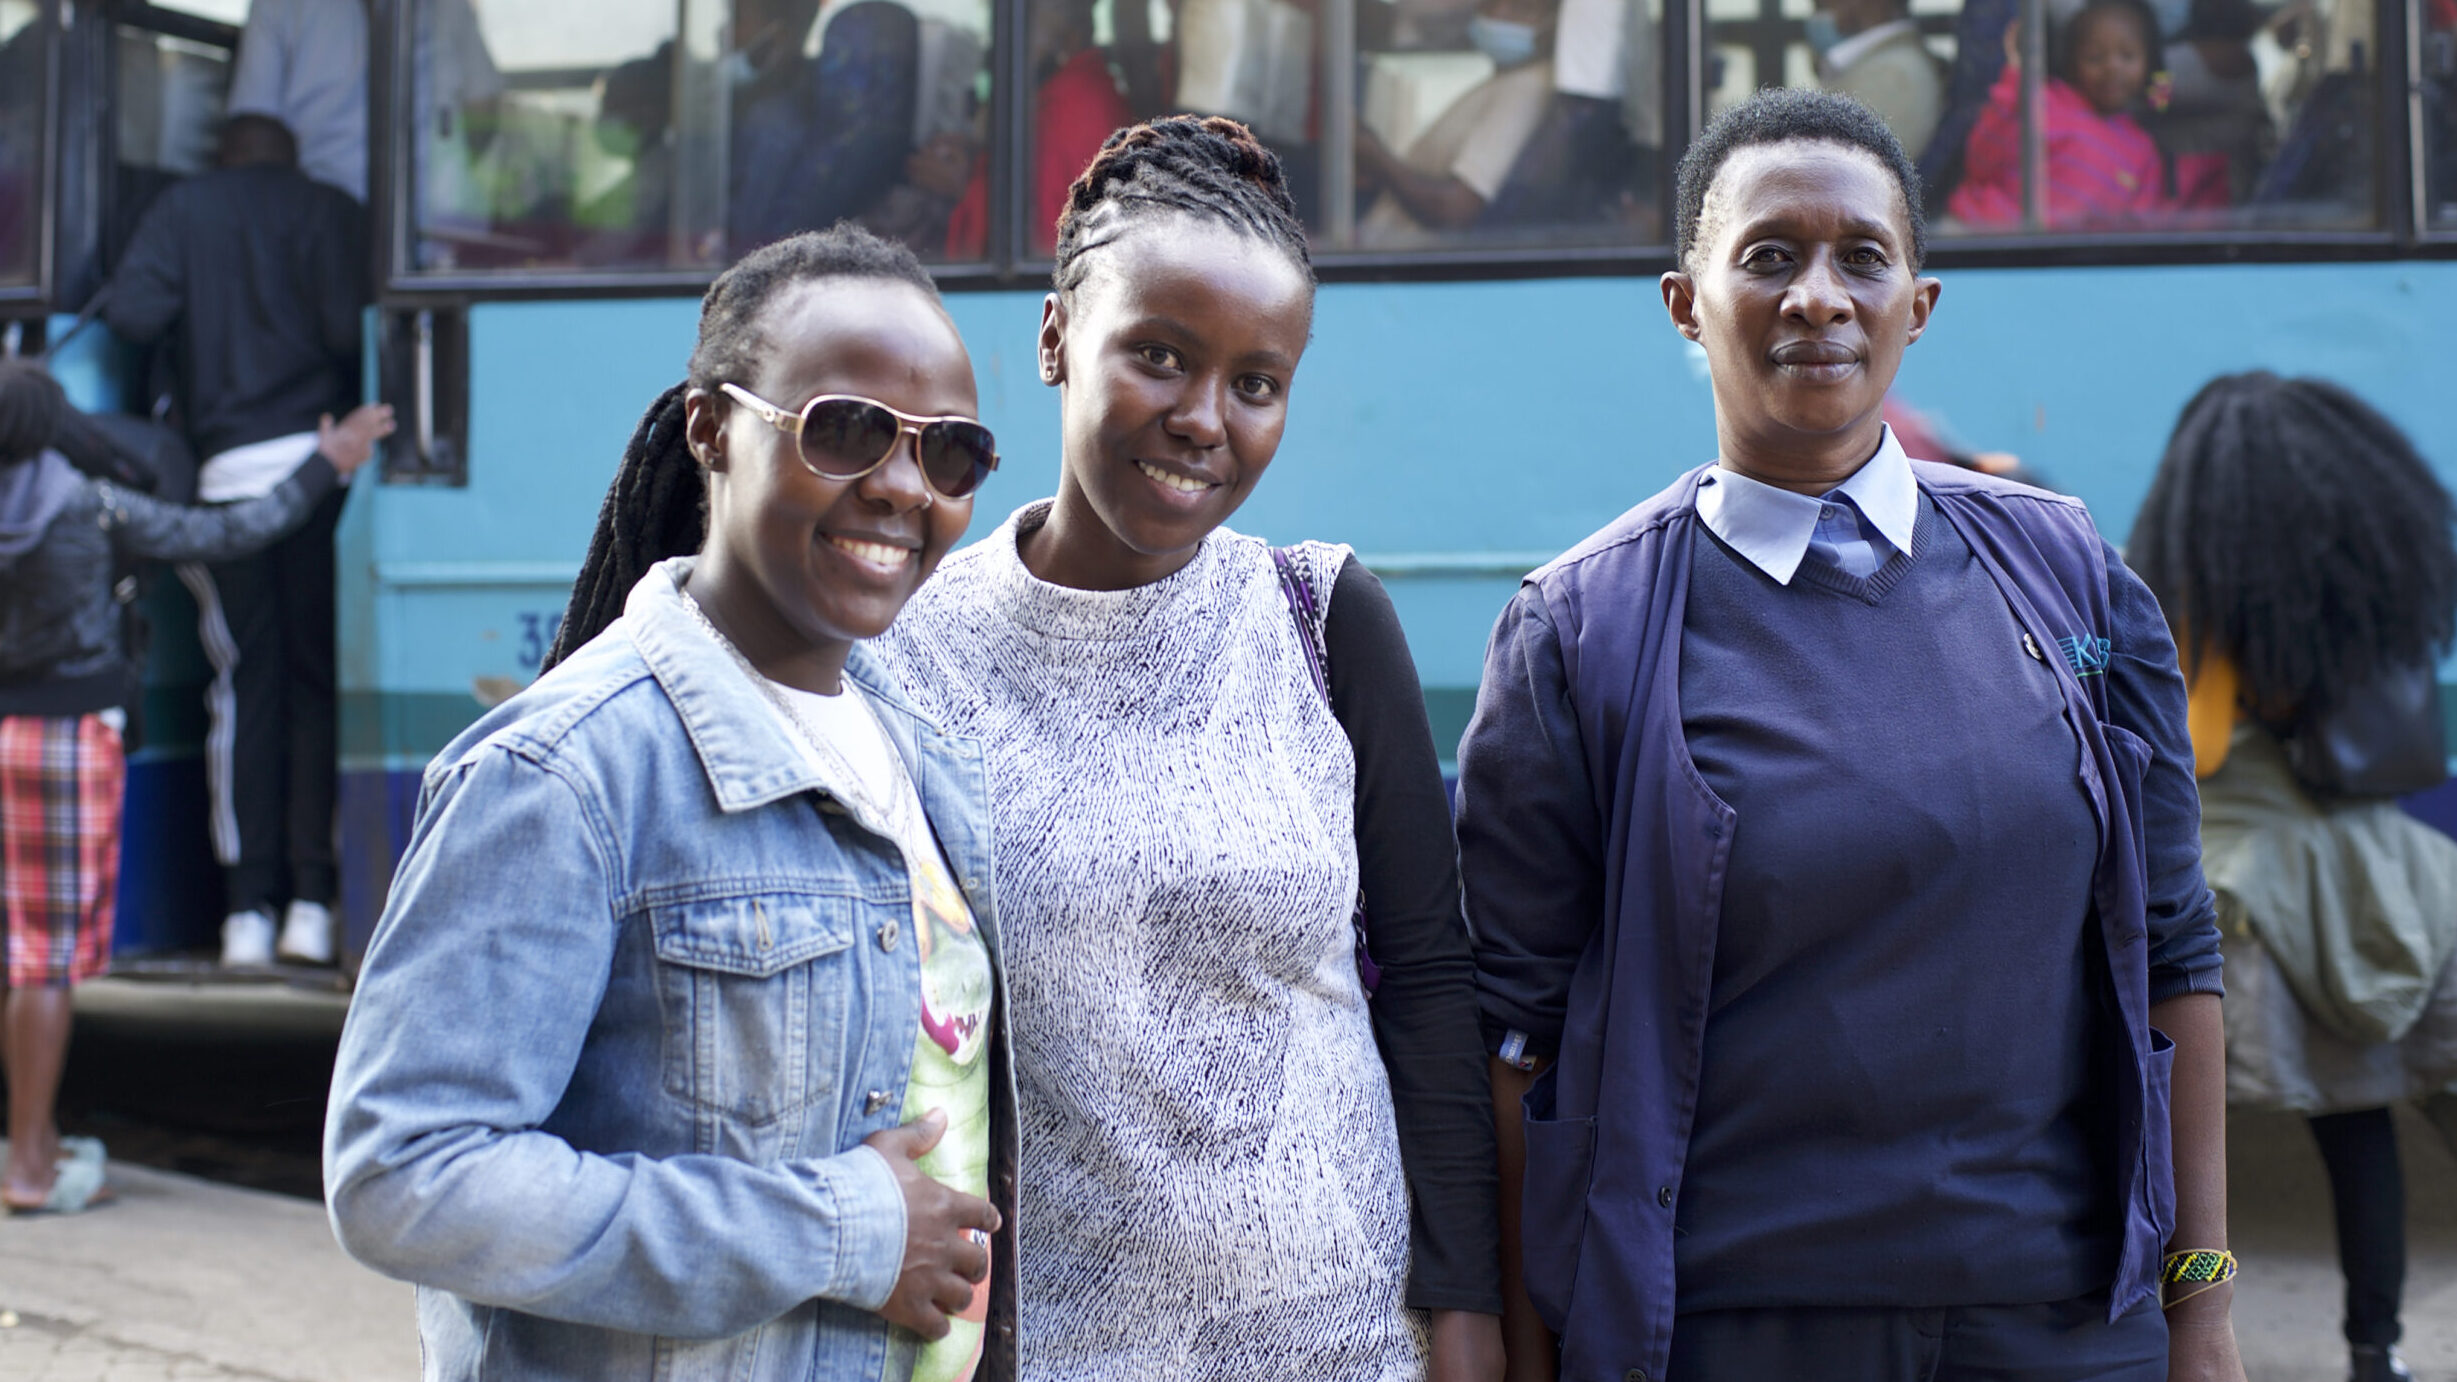 Kenyan Women Organize For Safety And Respect On Public Transport